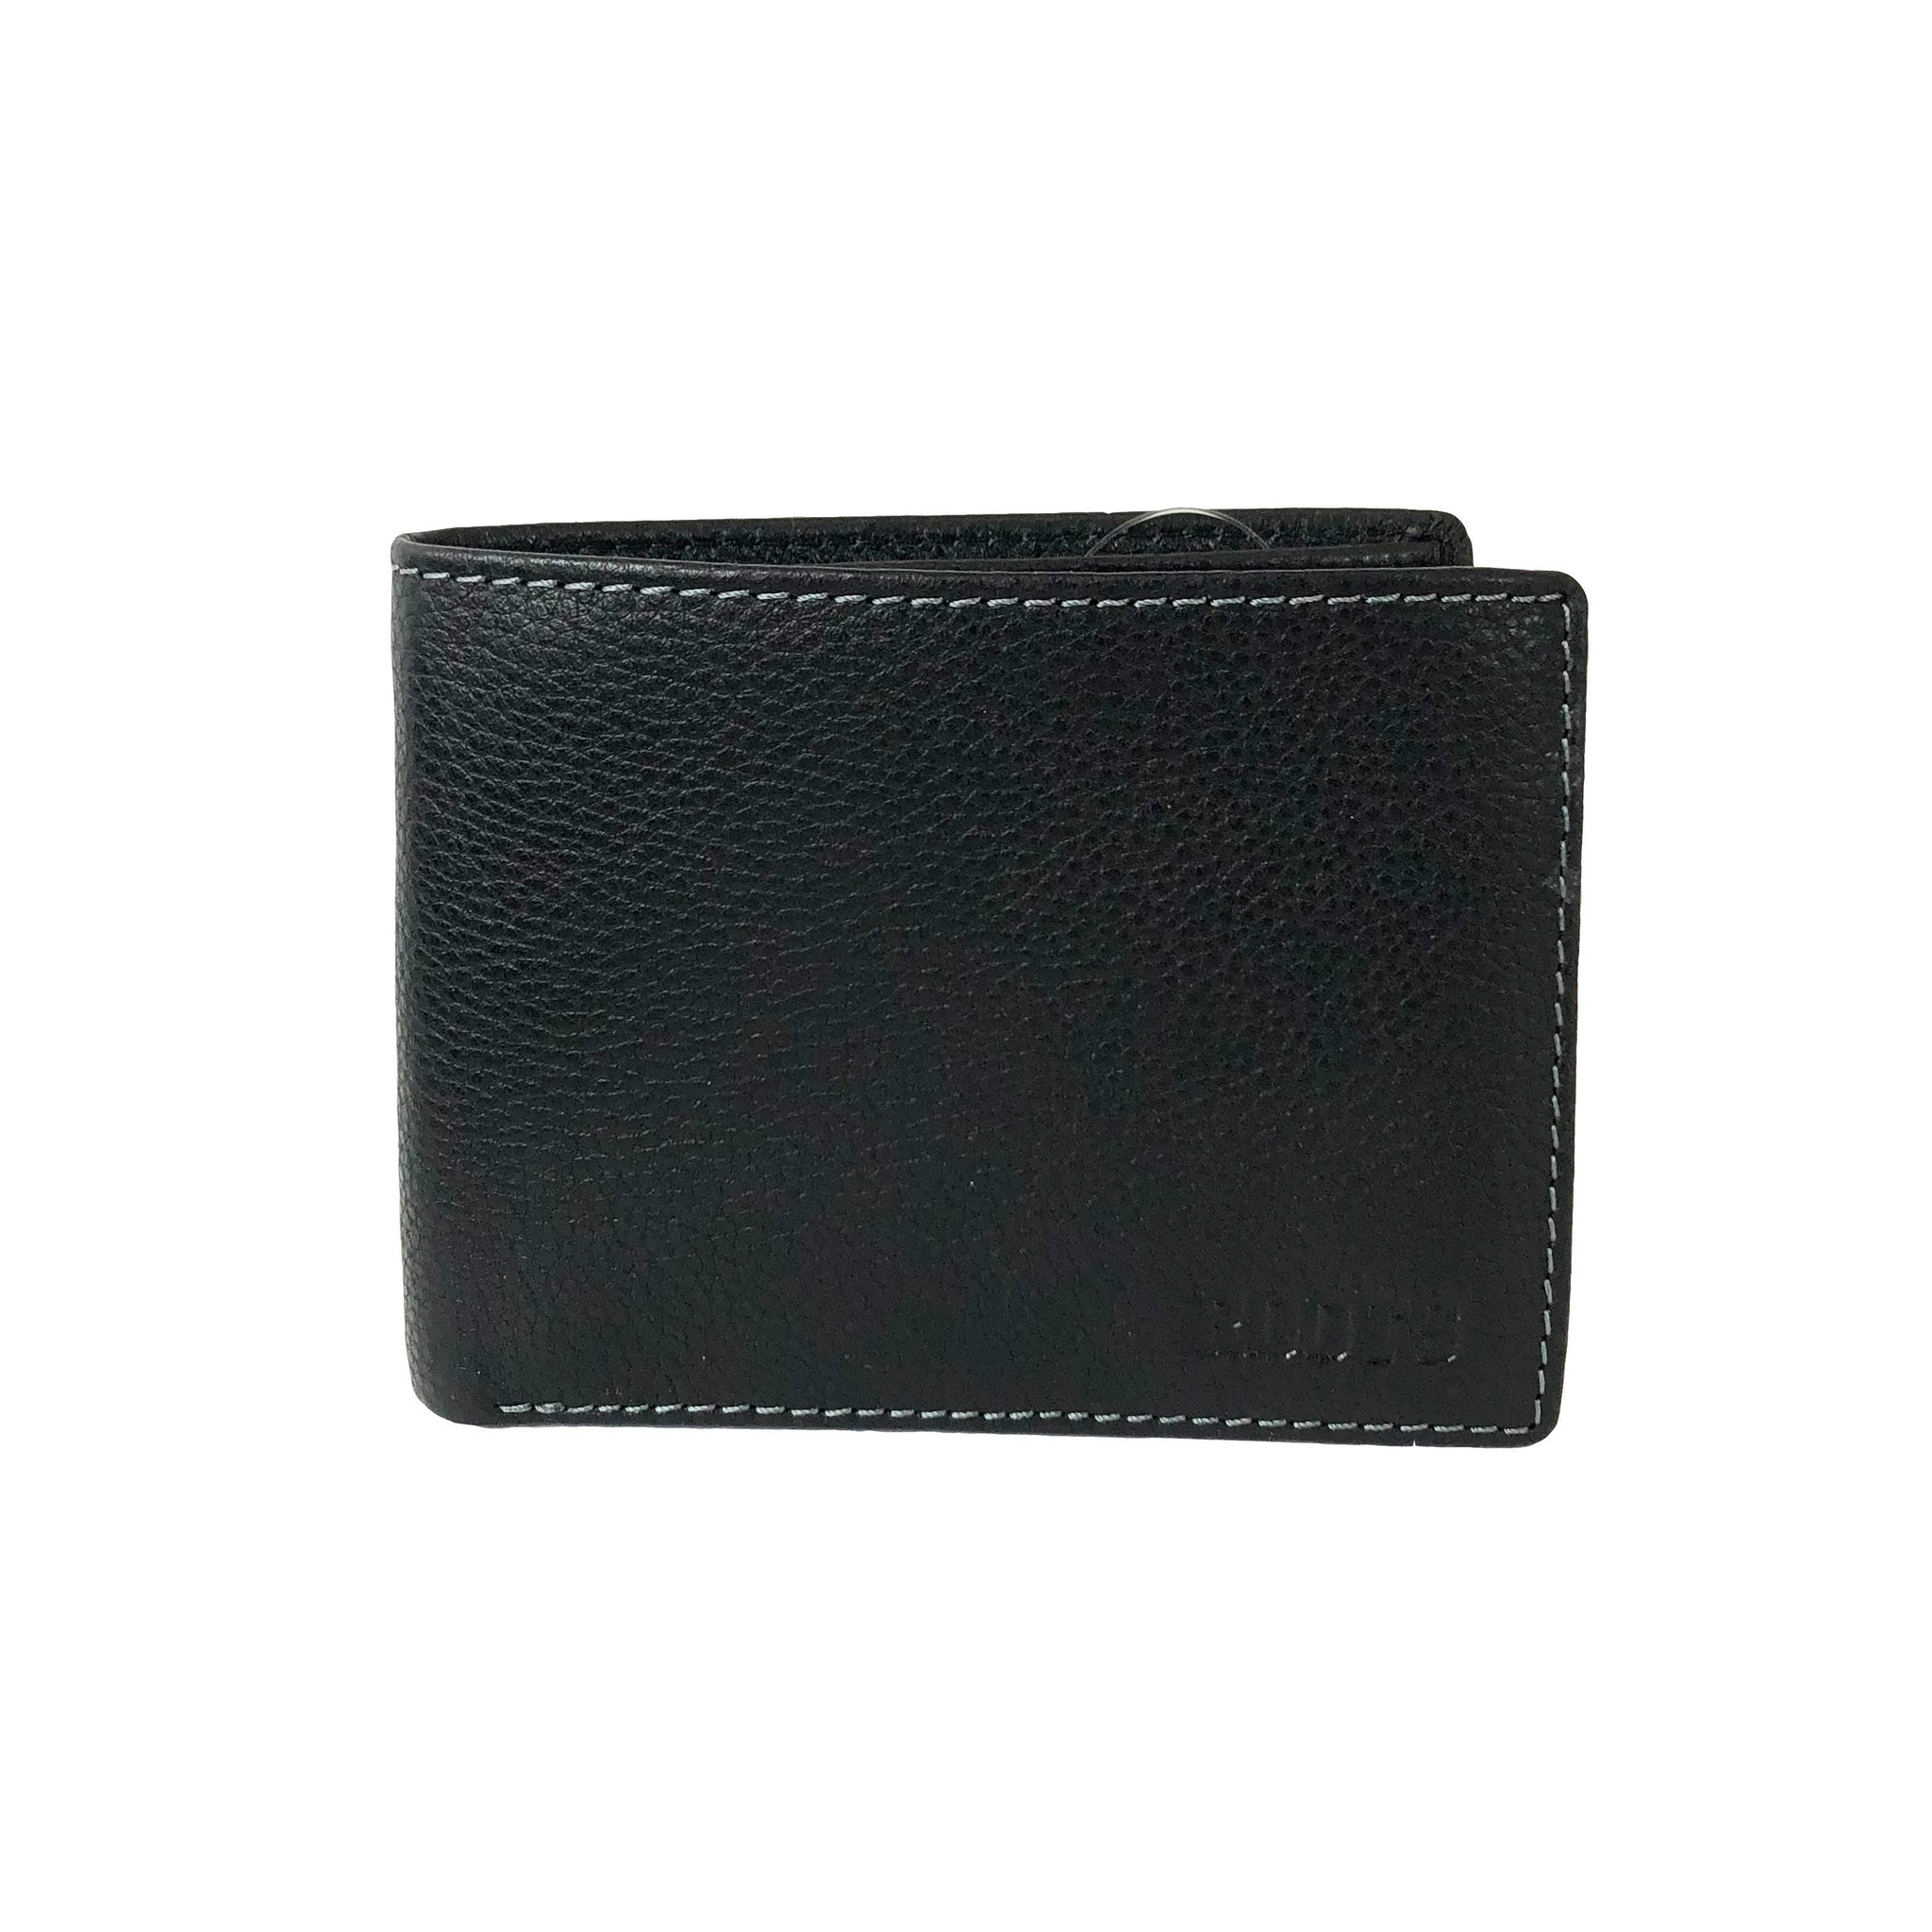 ROOTS MENS LEATHER SLIMFOLD WALLET- REMOVABLE ID